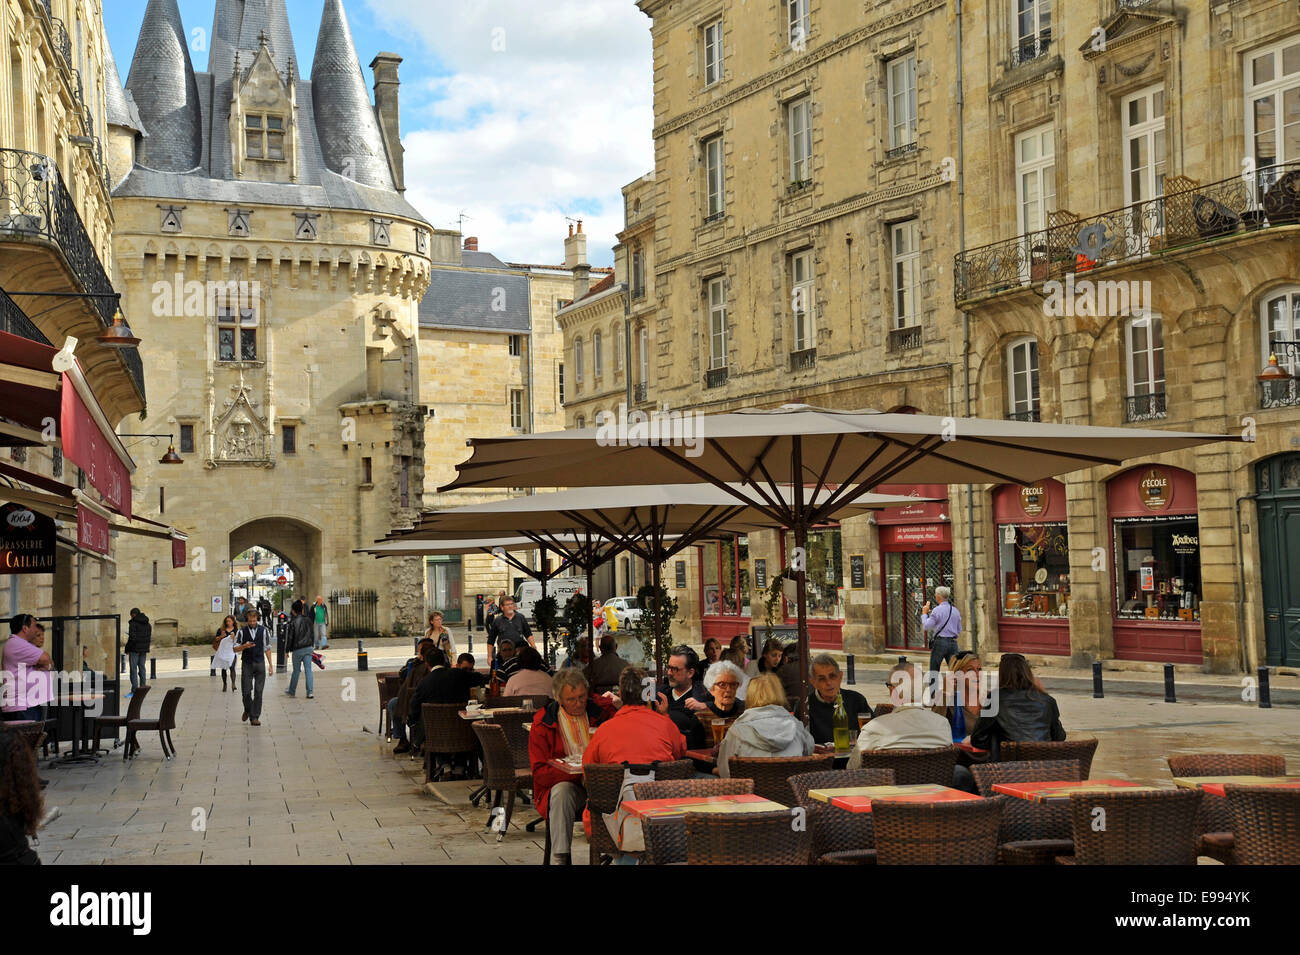 caf sc ne dans le centre ville de bordeaux france banque d 39 images photo stock 74574855 alamy. Black Bedroom Furniture Sets. Home Design Ideas